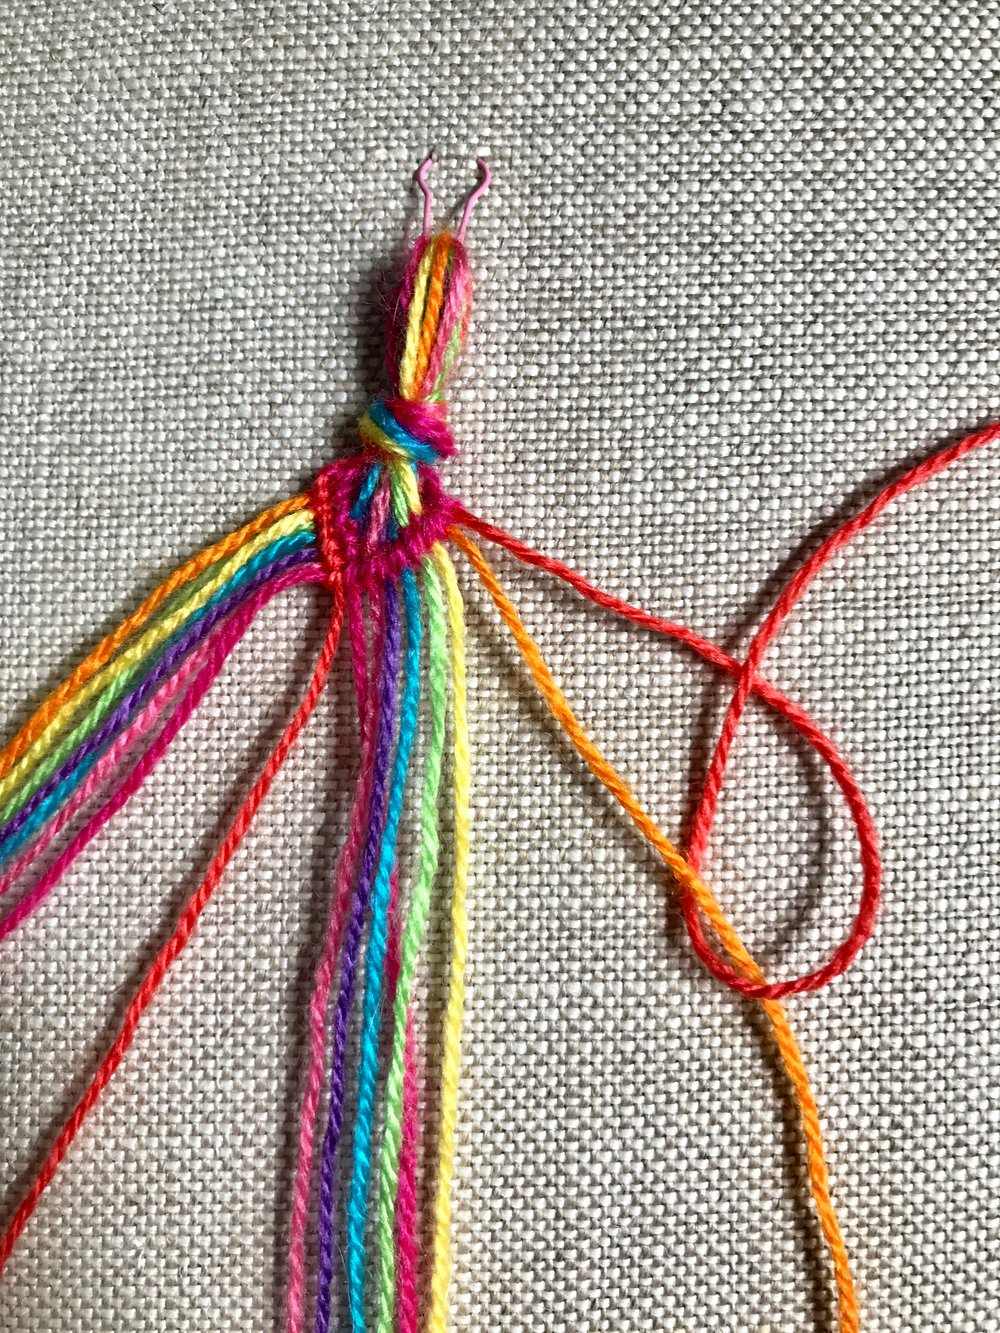 17. Now begin the right half of the second row, working a  backward knot  with the right most thread as the working thread.